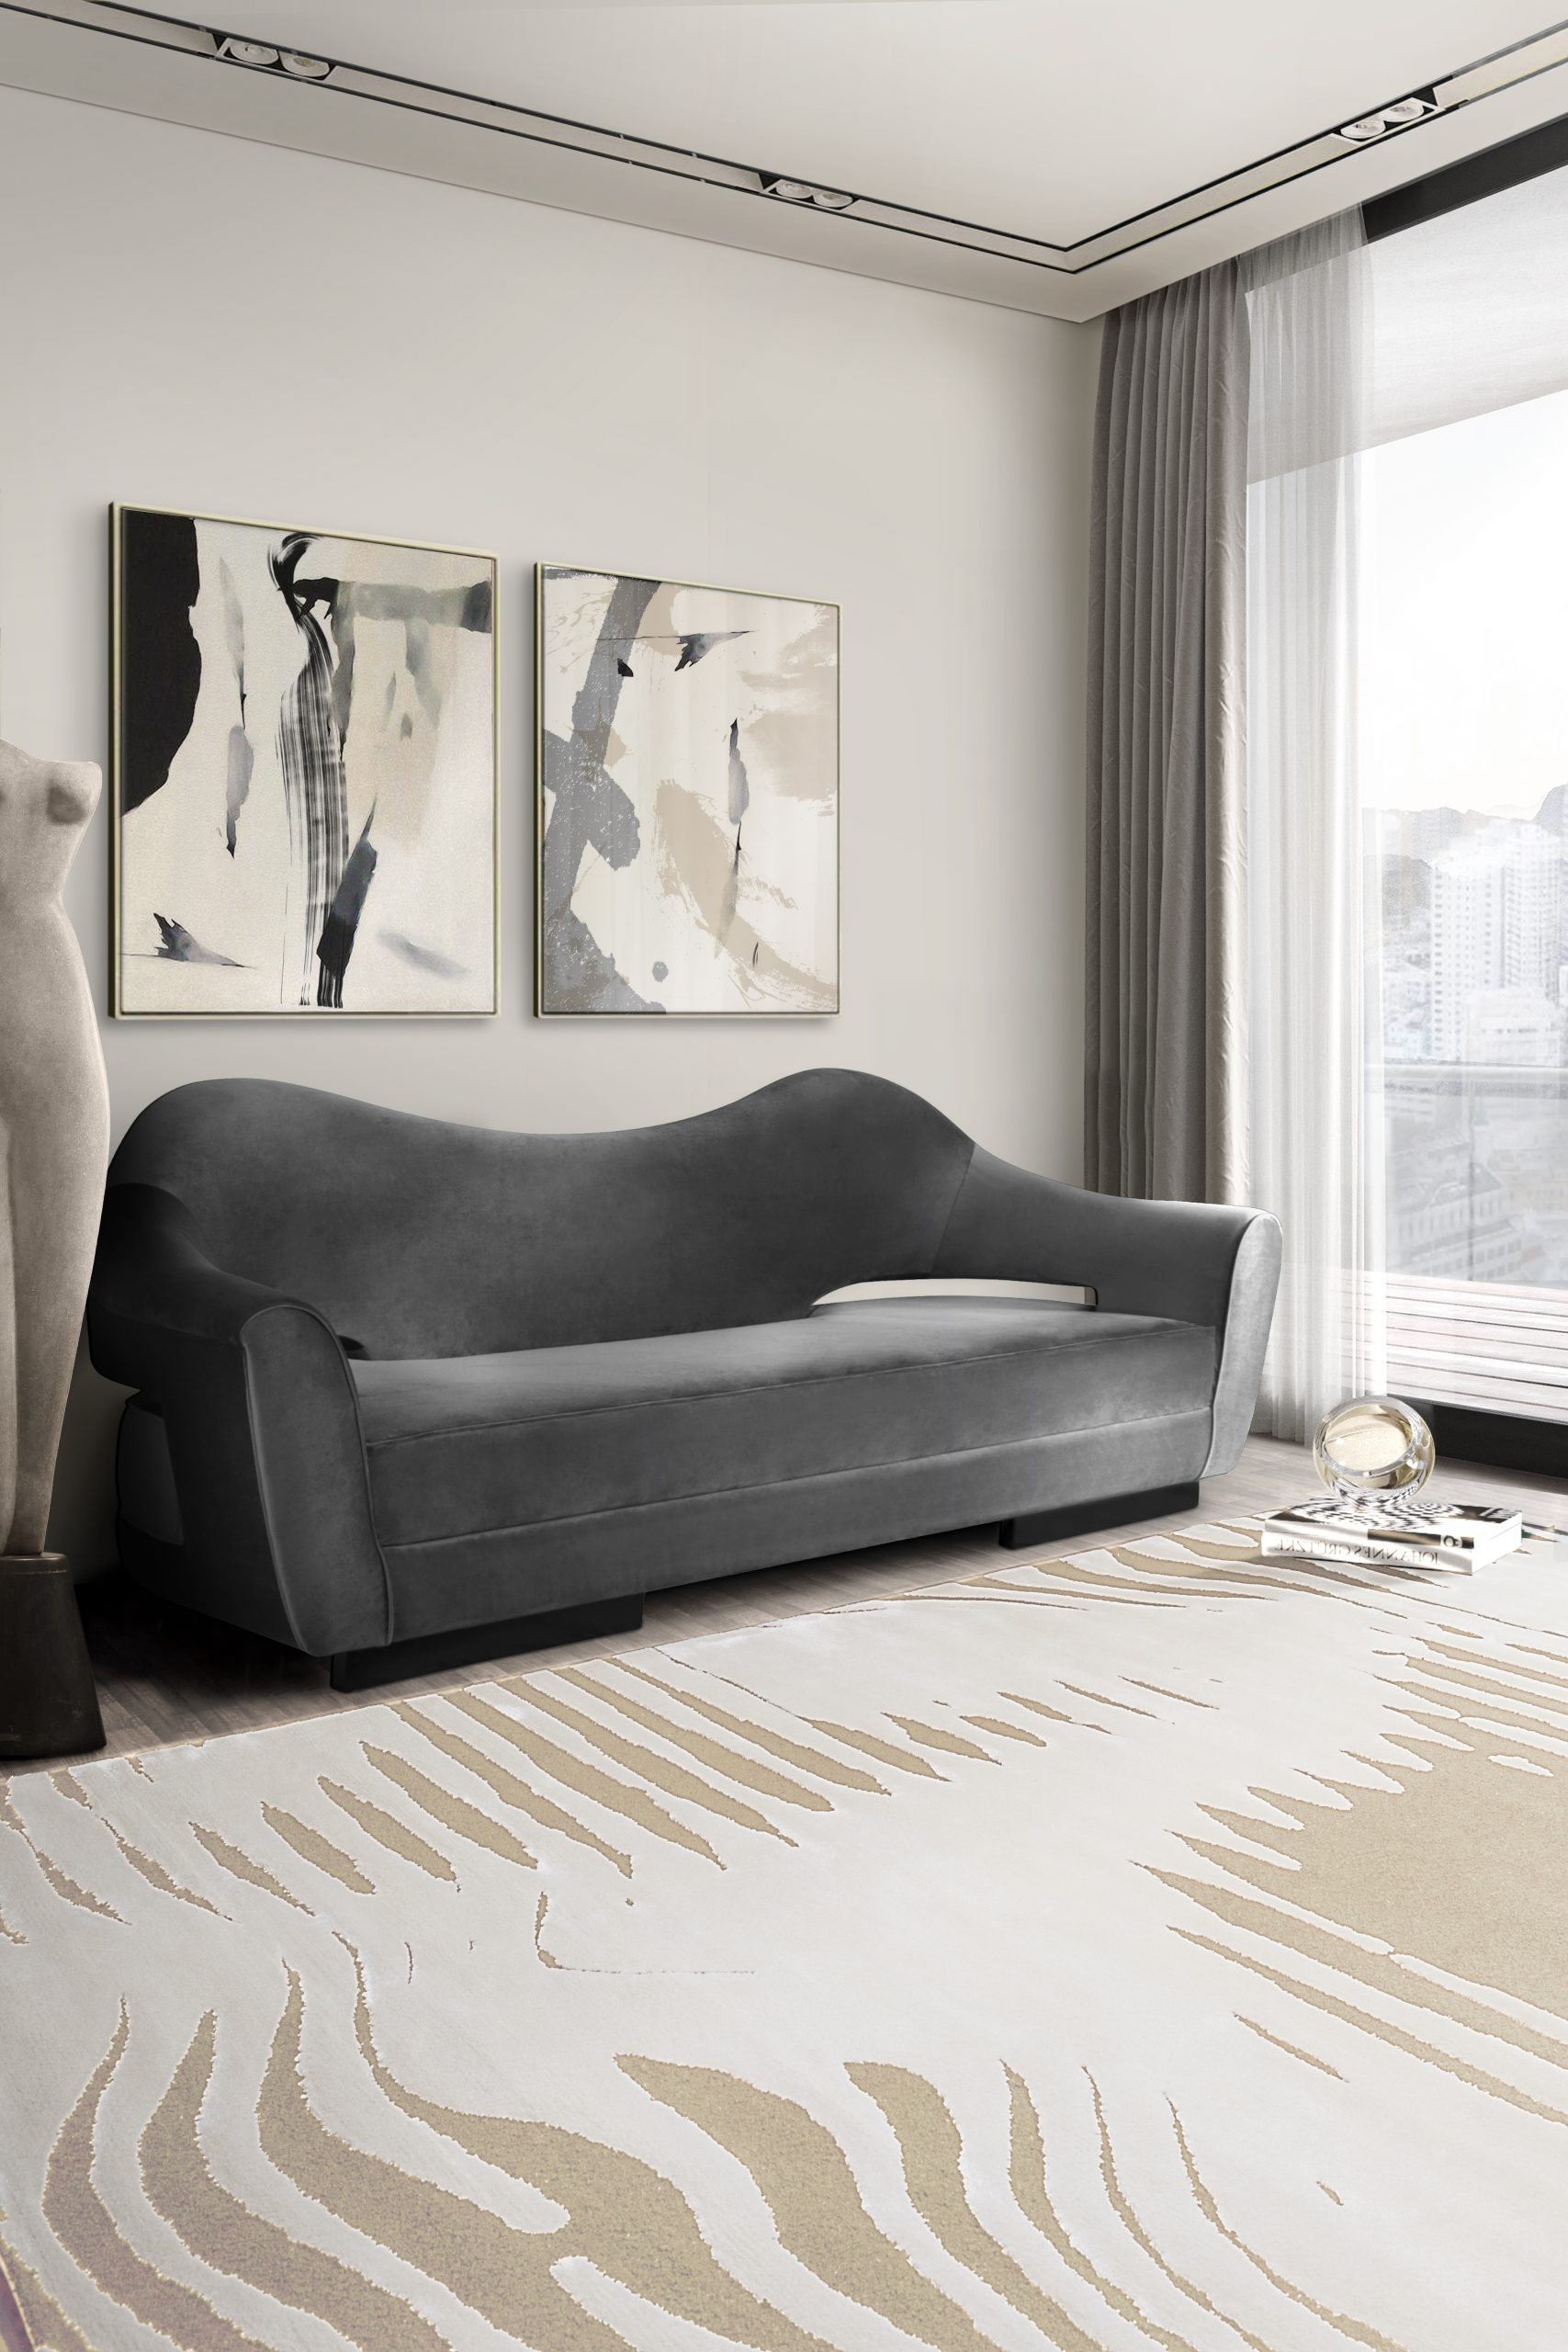 Incredible Sofas for Outstanding Living Rooms incredible sofasIncredible Sofas for Outstanding Living Roomsnau sofa 1 scaled